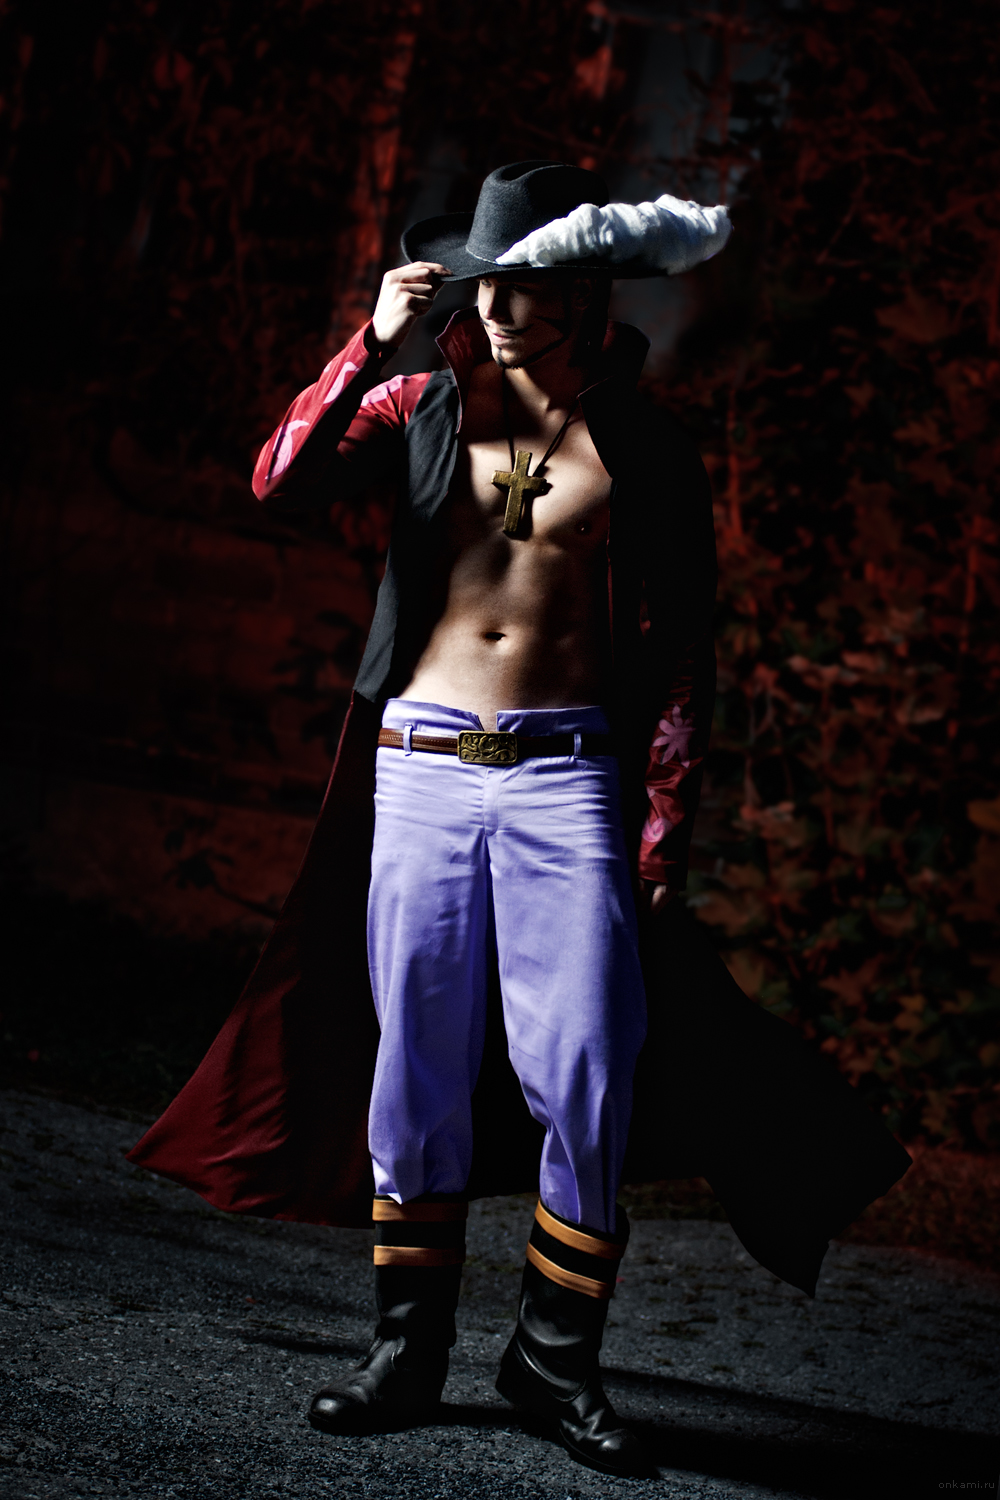 One Piece Dracule Mihawk cosplay